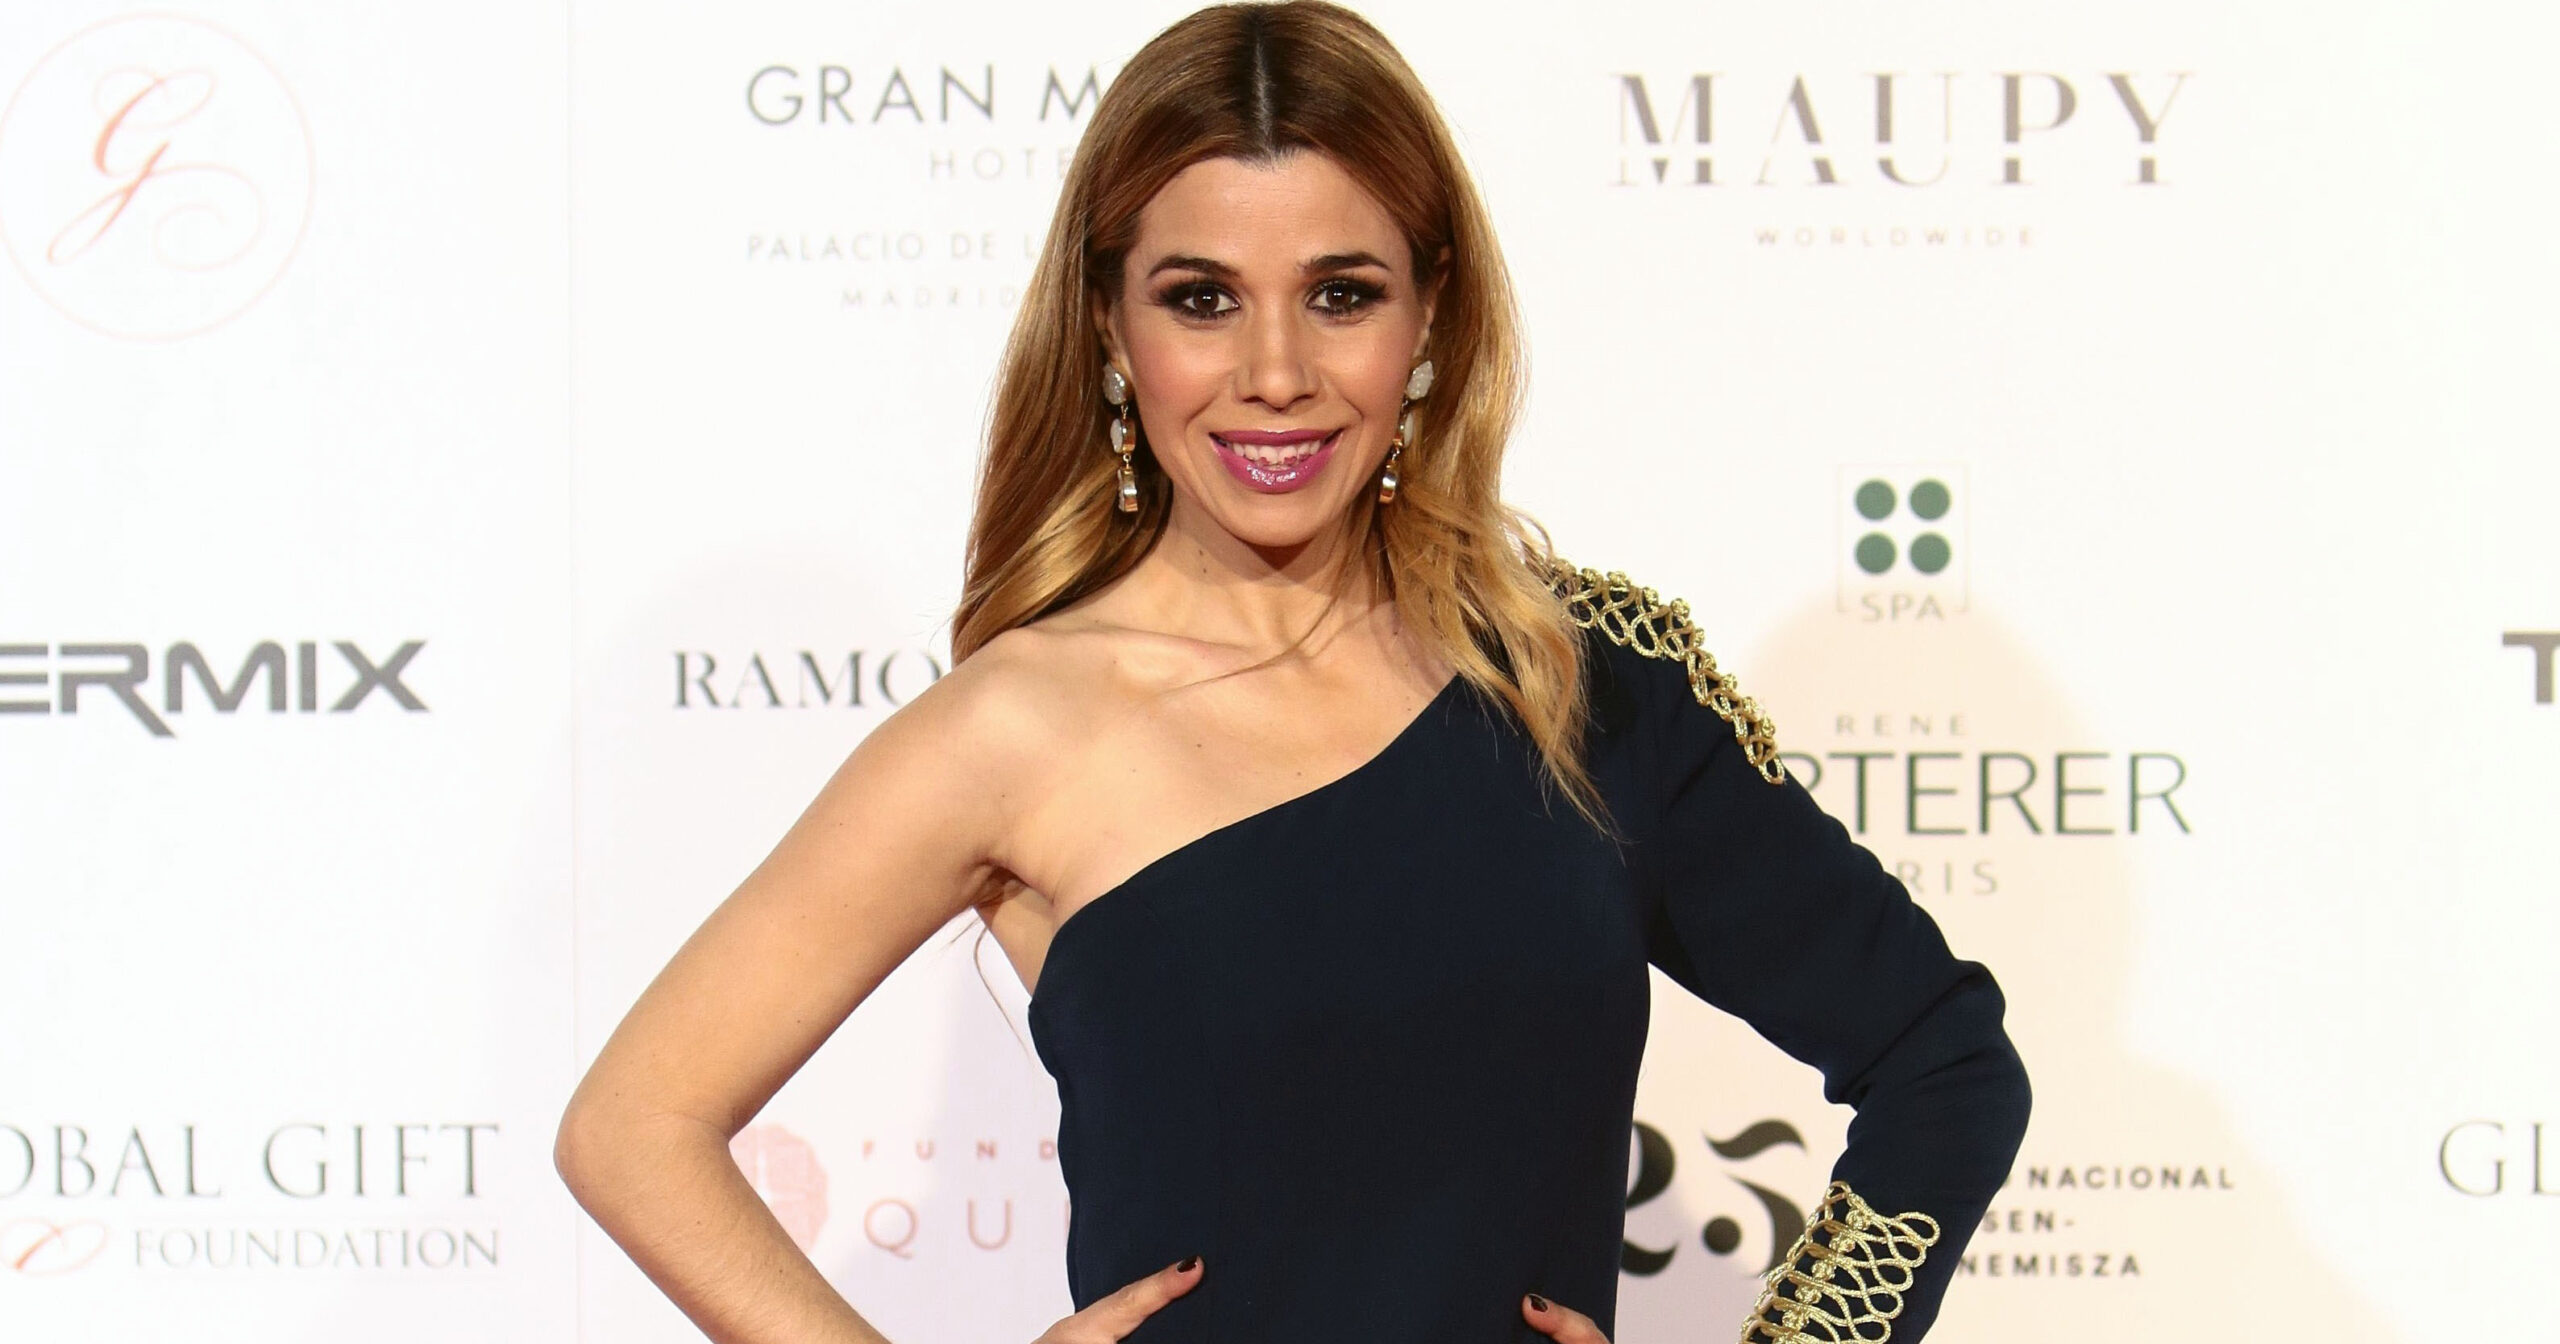 Natalia Rodríguez d'OT, en un 'photocall' / Europa Press